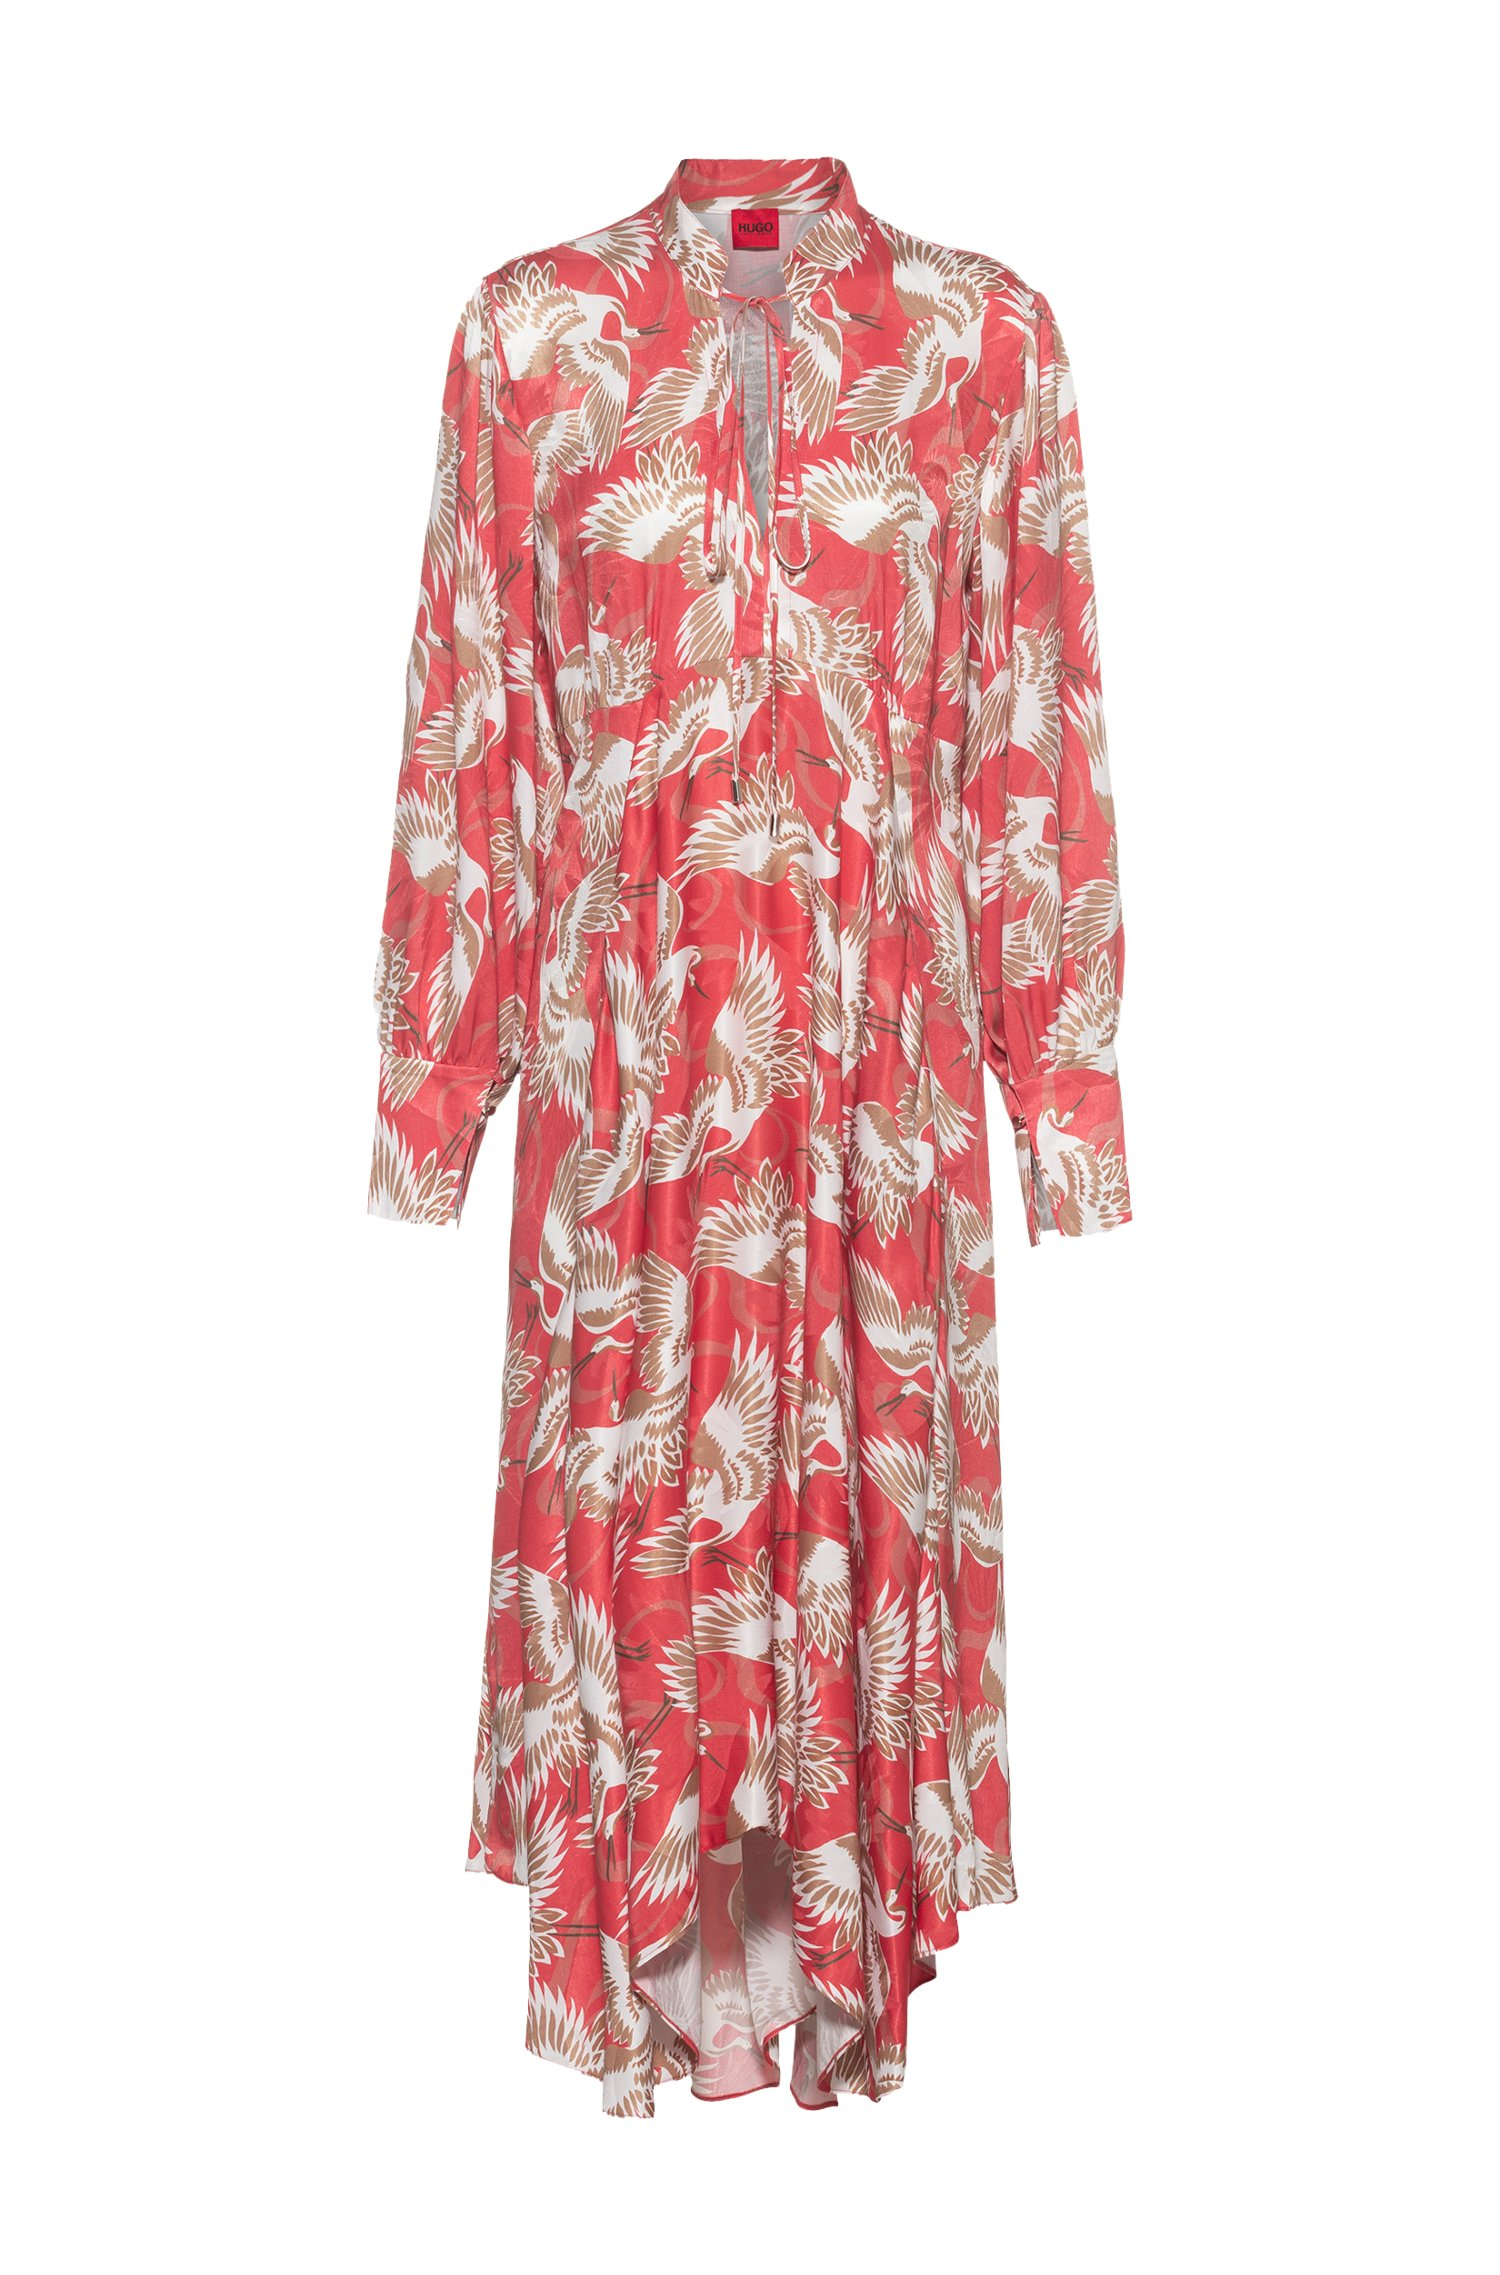 Crane-print long-sleeved midi dress with tie detail, Red Patterned